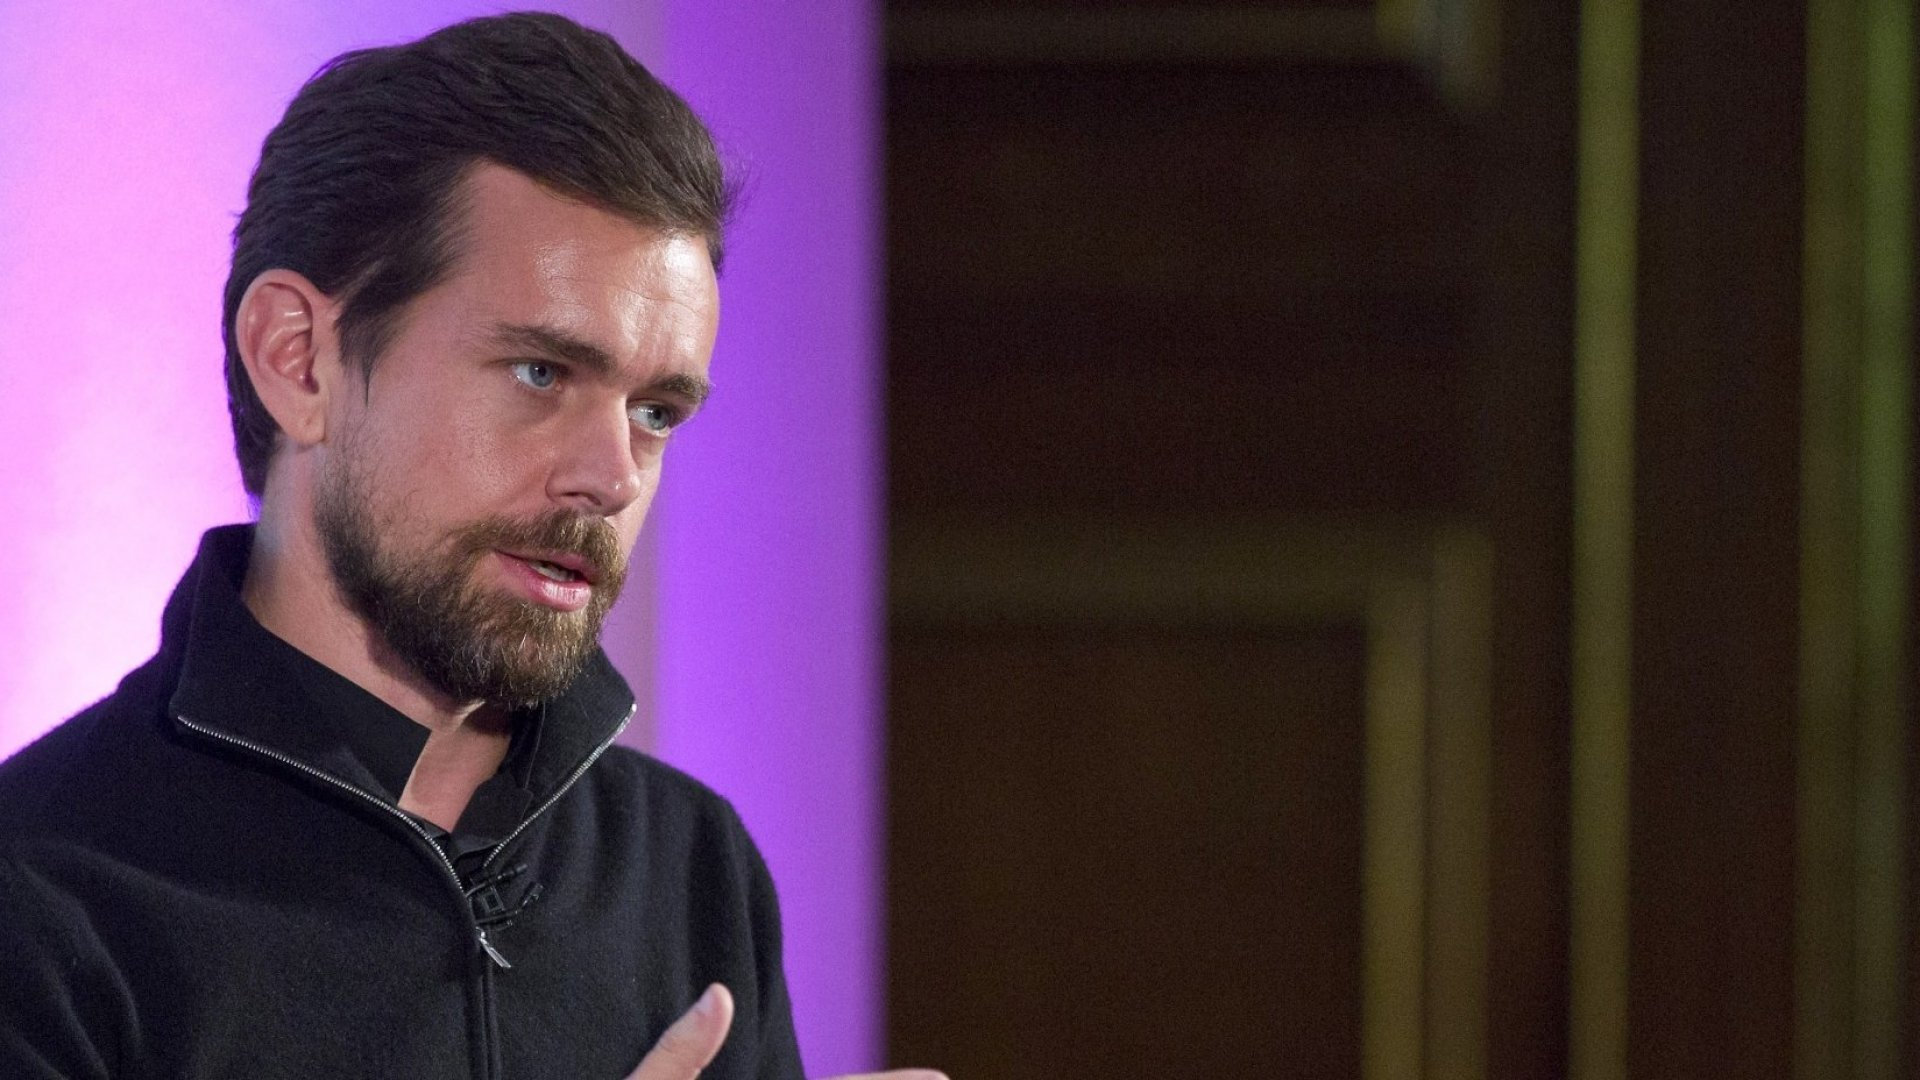 Square Is a Public Company. Now What?